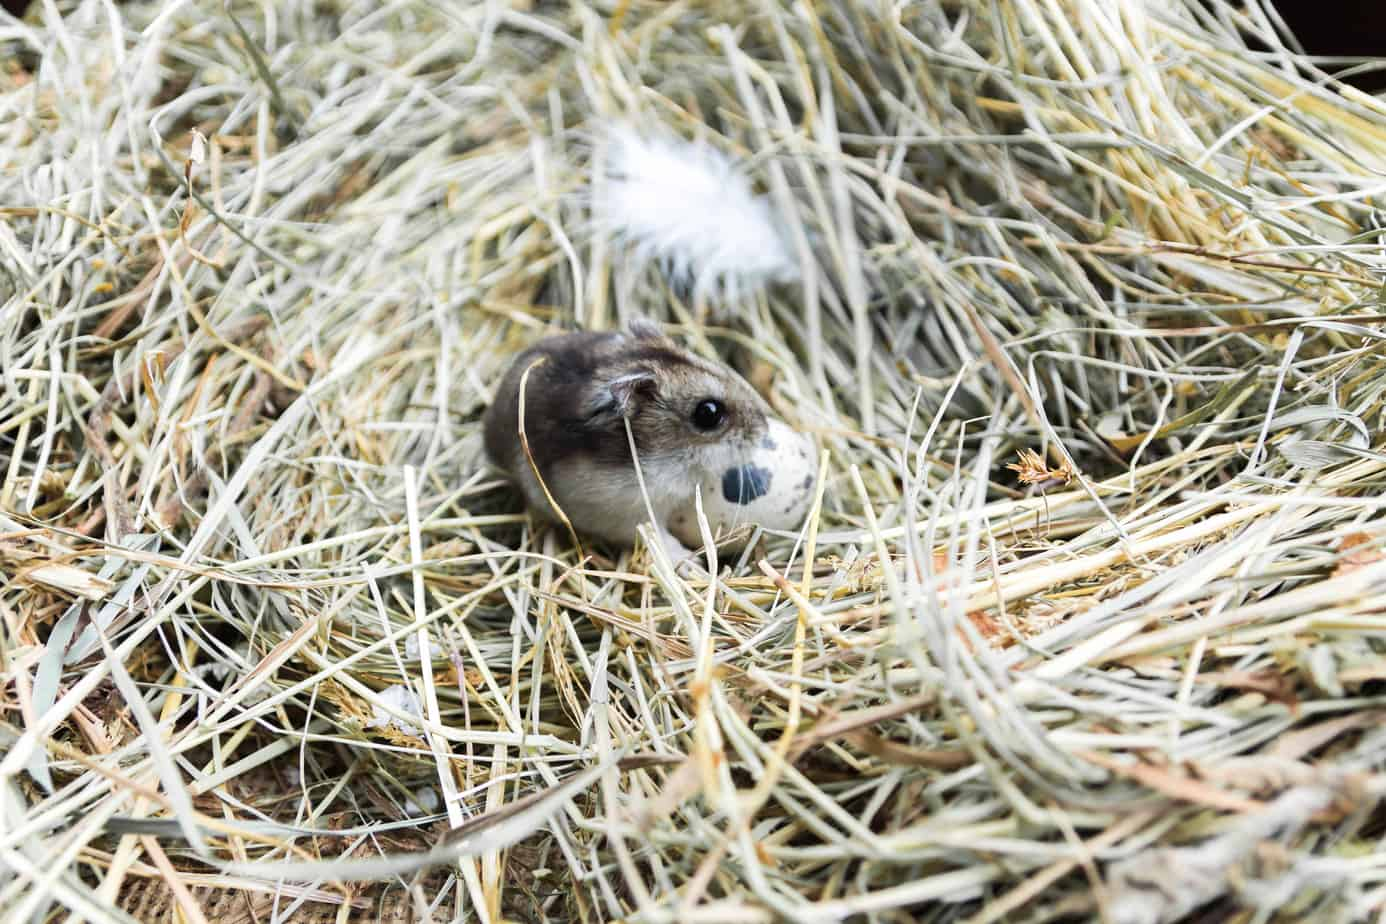 Mouse Nests Understanding Where Mice Reside To Protect Your Home